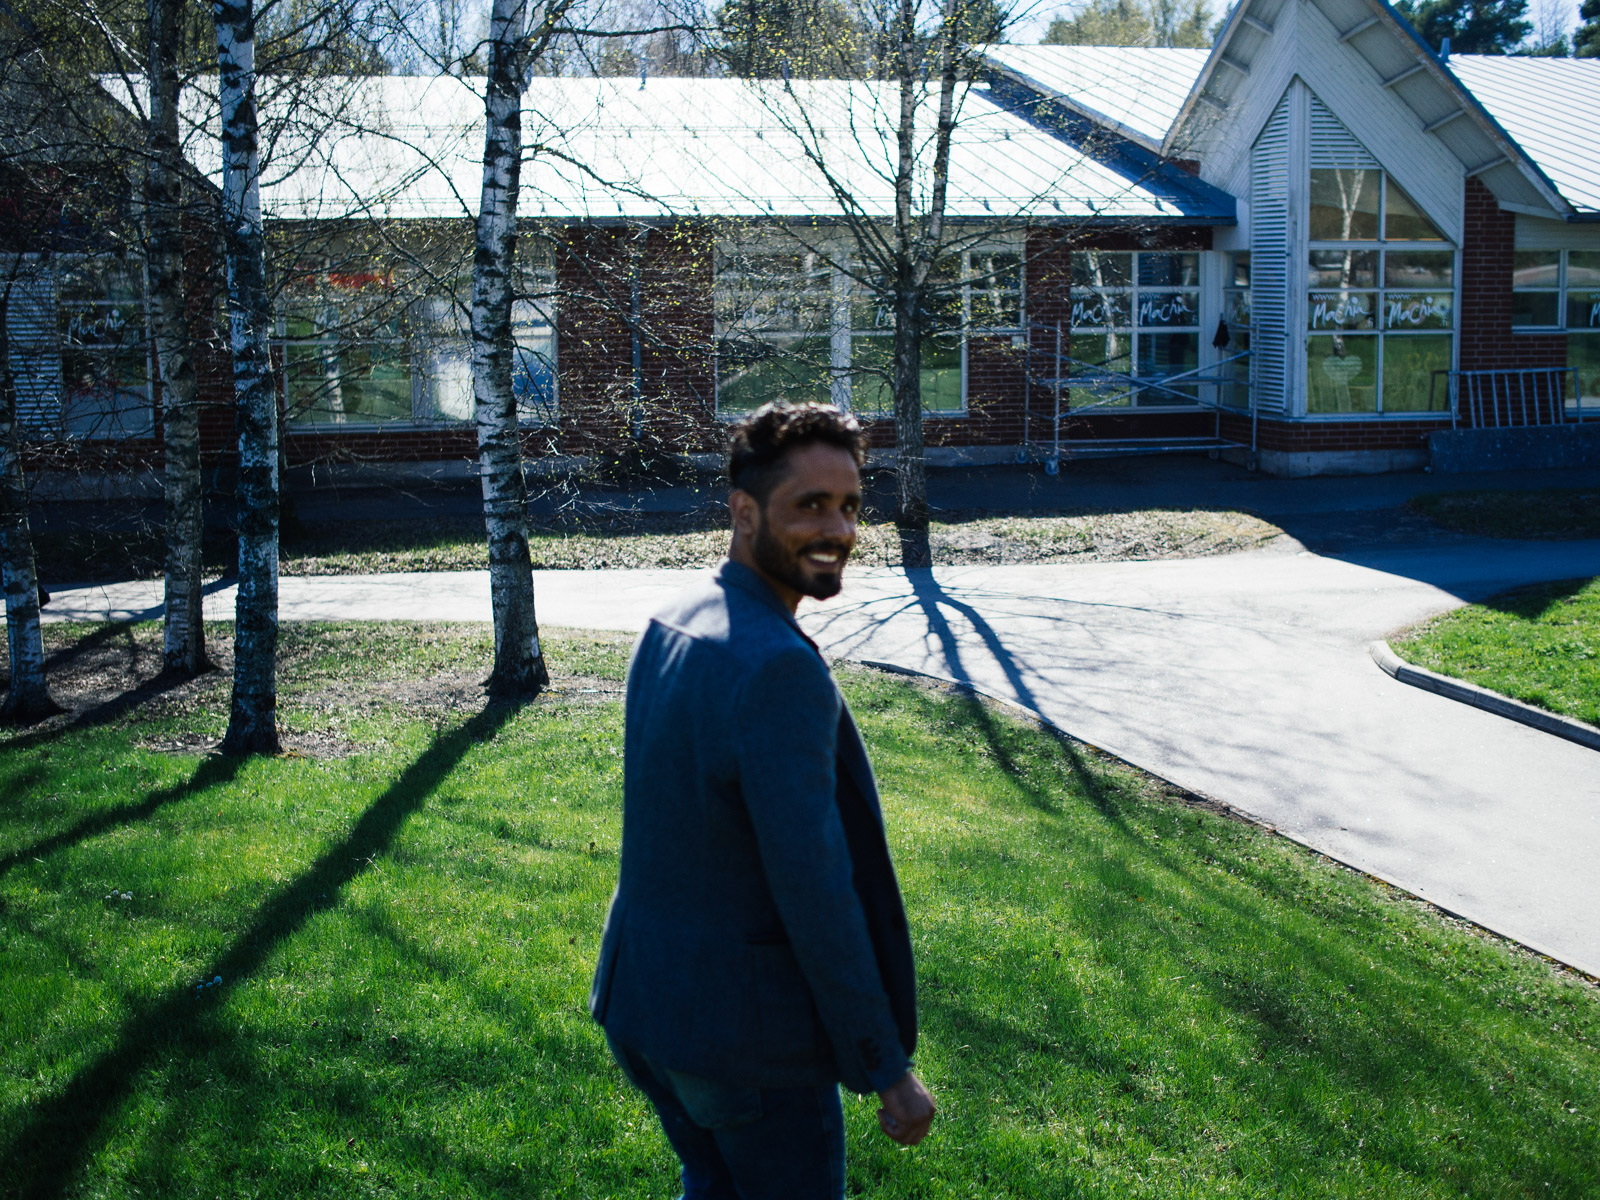 By the end of September 2016, Ihab and Yousuf, have been legally accepted in Finland. They decided to leave the small village of Velkua and head to the former Finnish capital, Turku. Ihab, decided to move together with is girlfriend Mintu, a finnish girl he met during his staying in the woods. Yousef has been working very hard, preparing all the papers needed to allow is wife and his five kids to come to live in Finland. Both Yousef and Ihab work with a temporary contract in a factory producing car parts 40km far from the city.